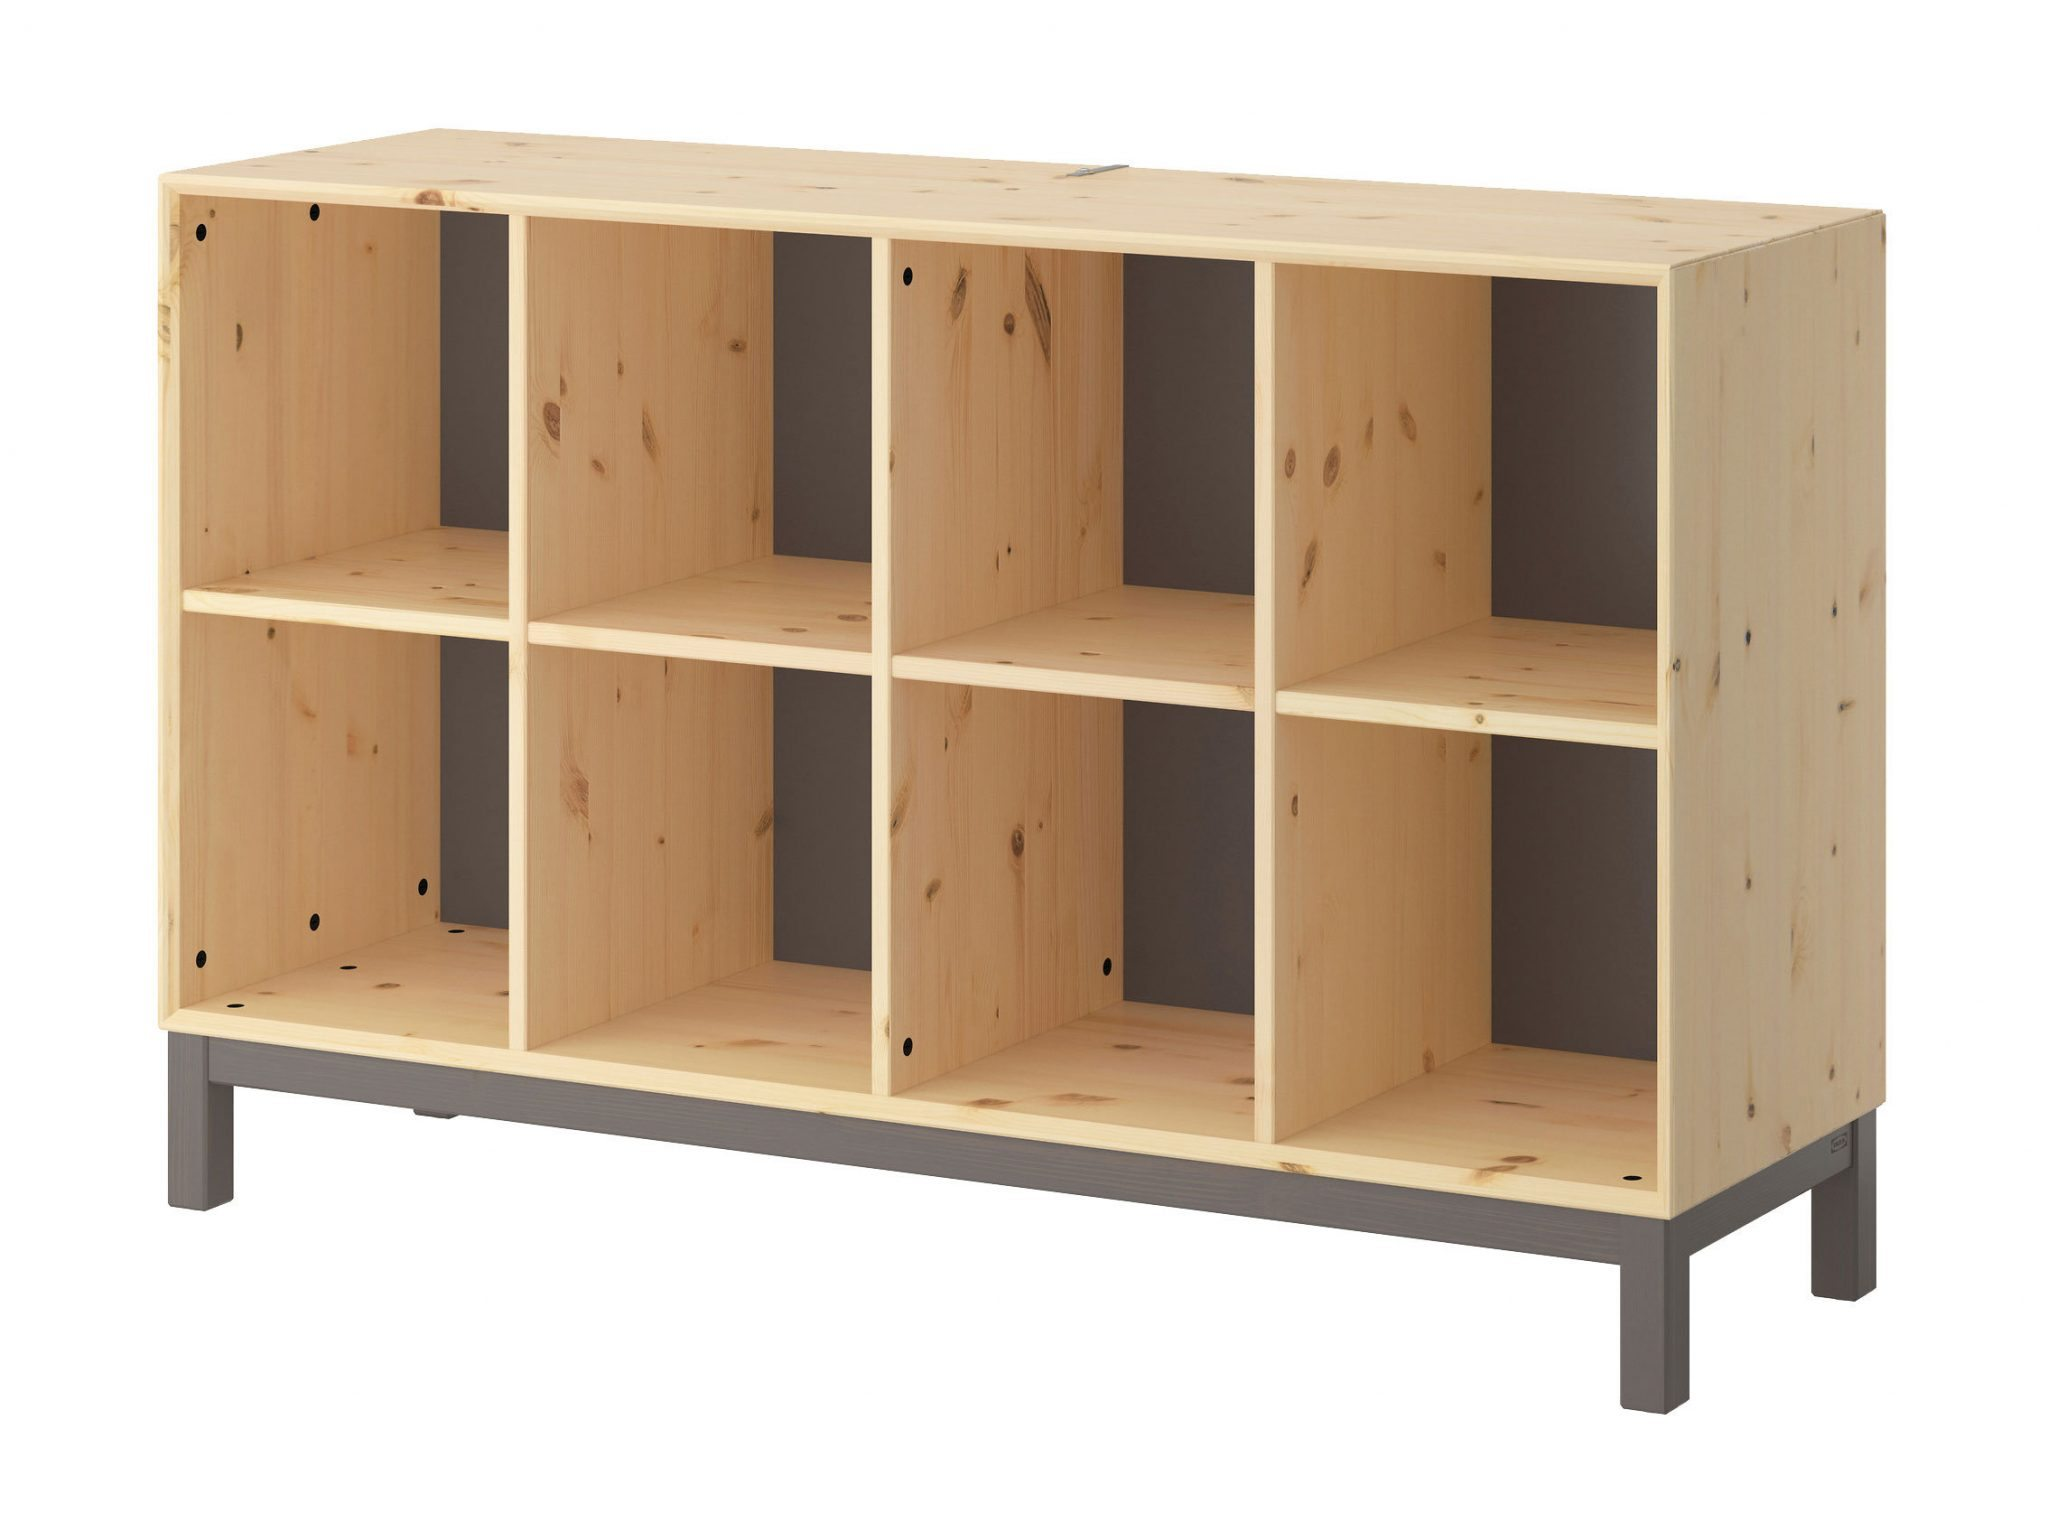 Ikea Expedit Schubladen Ikea NornÄs The Solid Wood Expedit Alternative For Djs